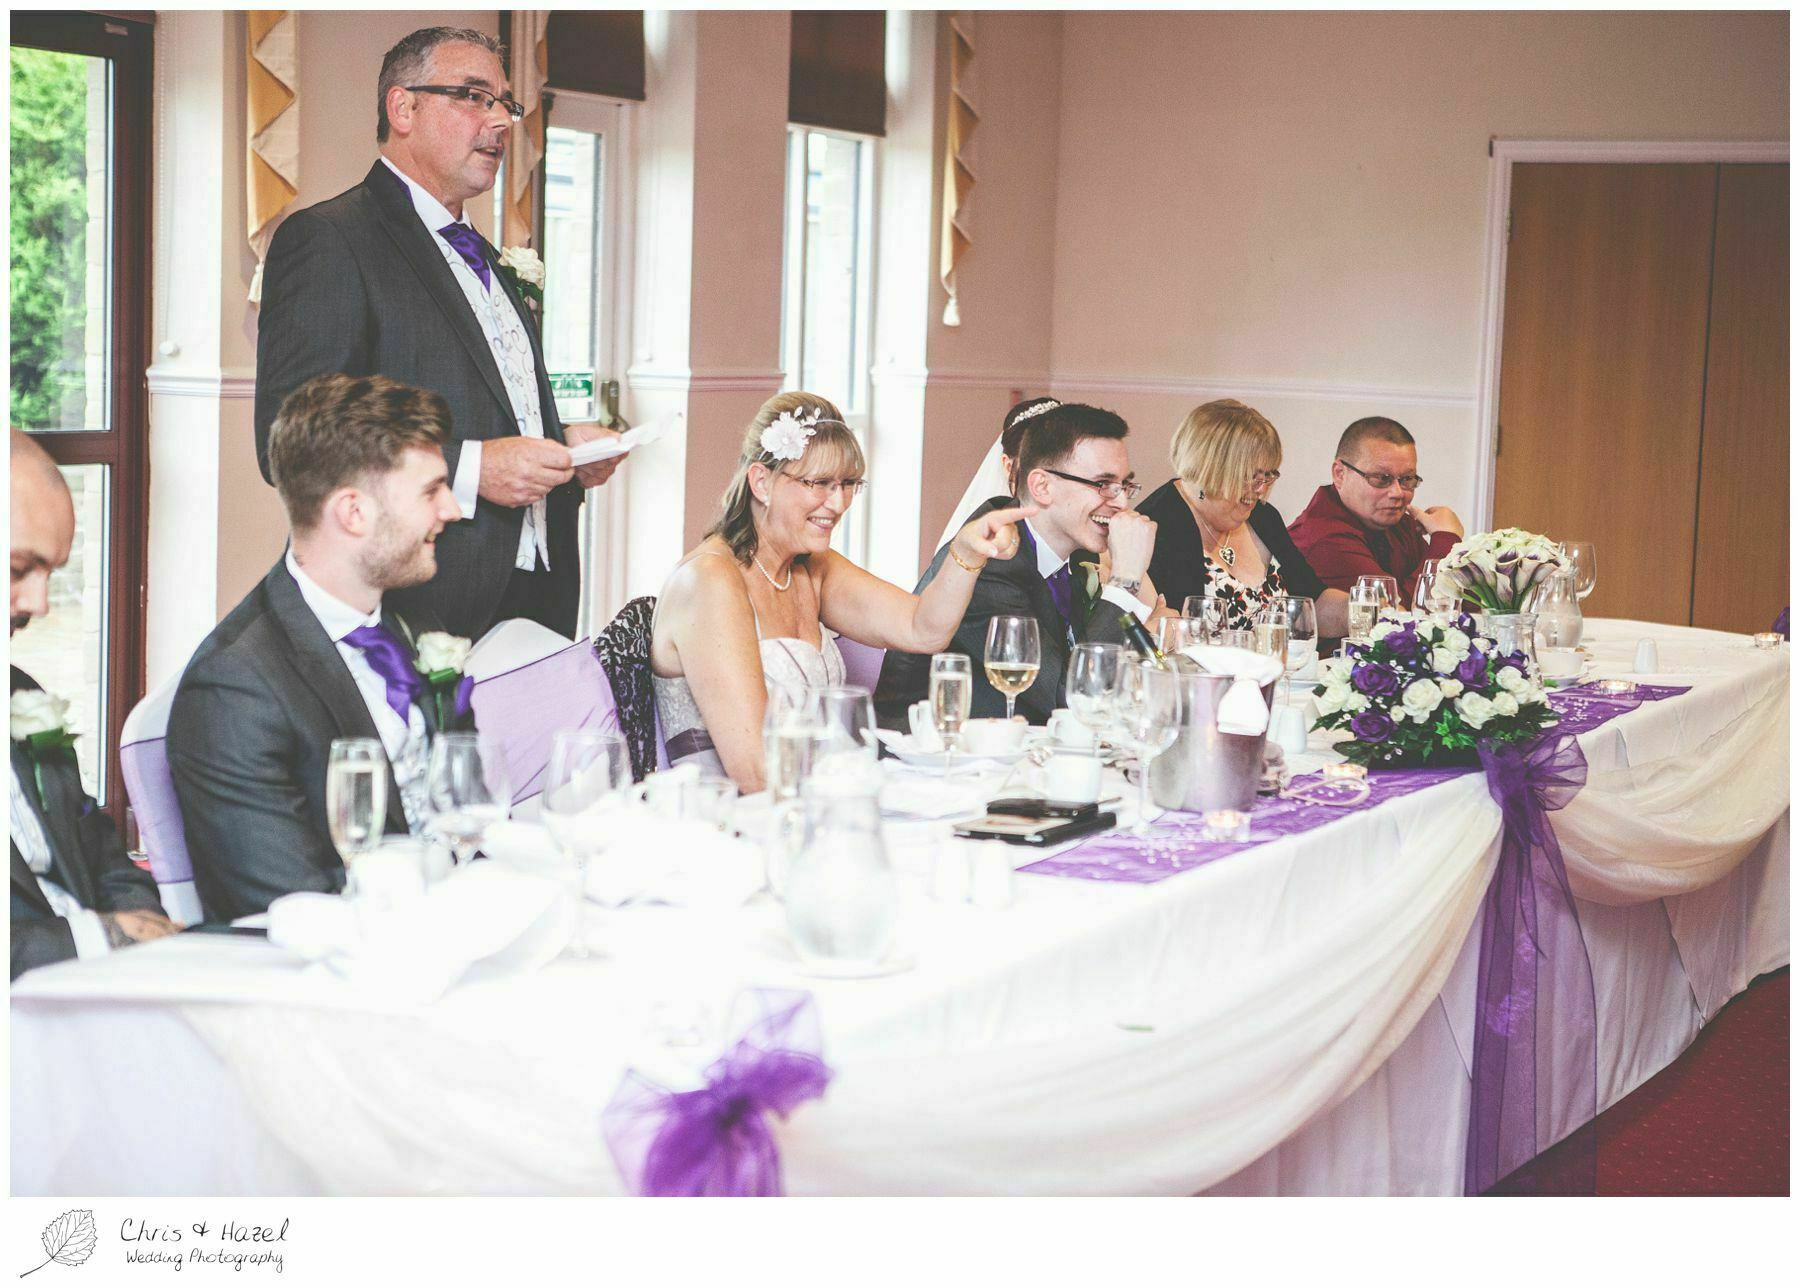 father of groom speech, bagden hall wedding venue, documentary wedding photography, denny dale, huddersfield, Wedding Photographer, Bagden Hall, Wedding Photography, Chris and Hazel Wedding Photography, Alex tomenson, Vicky hunt